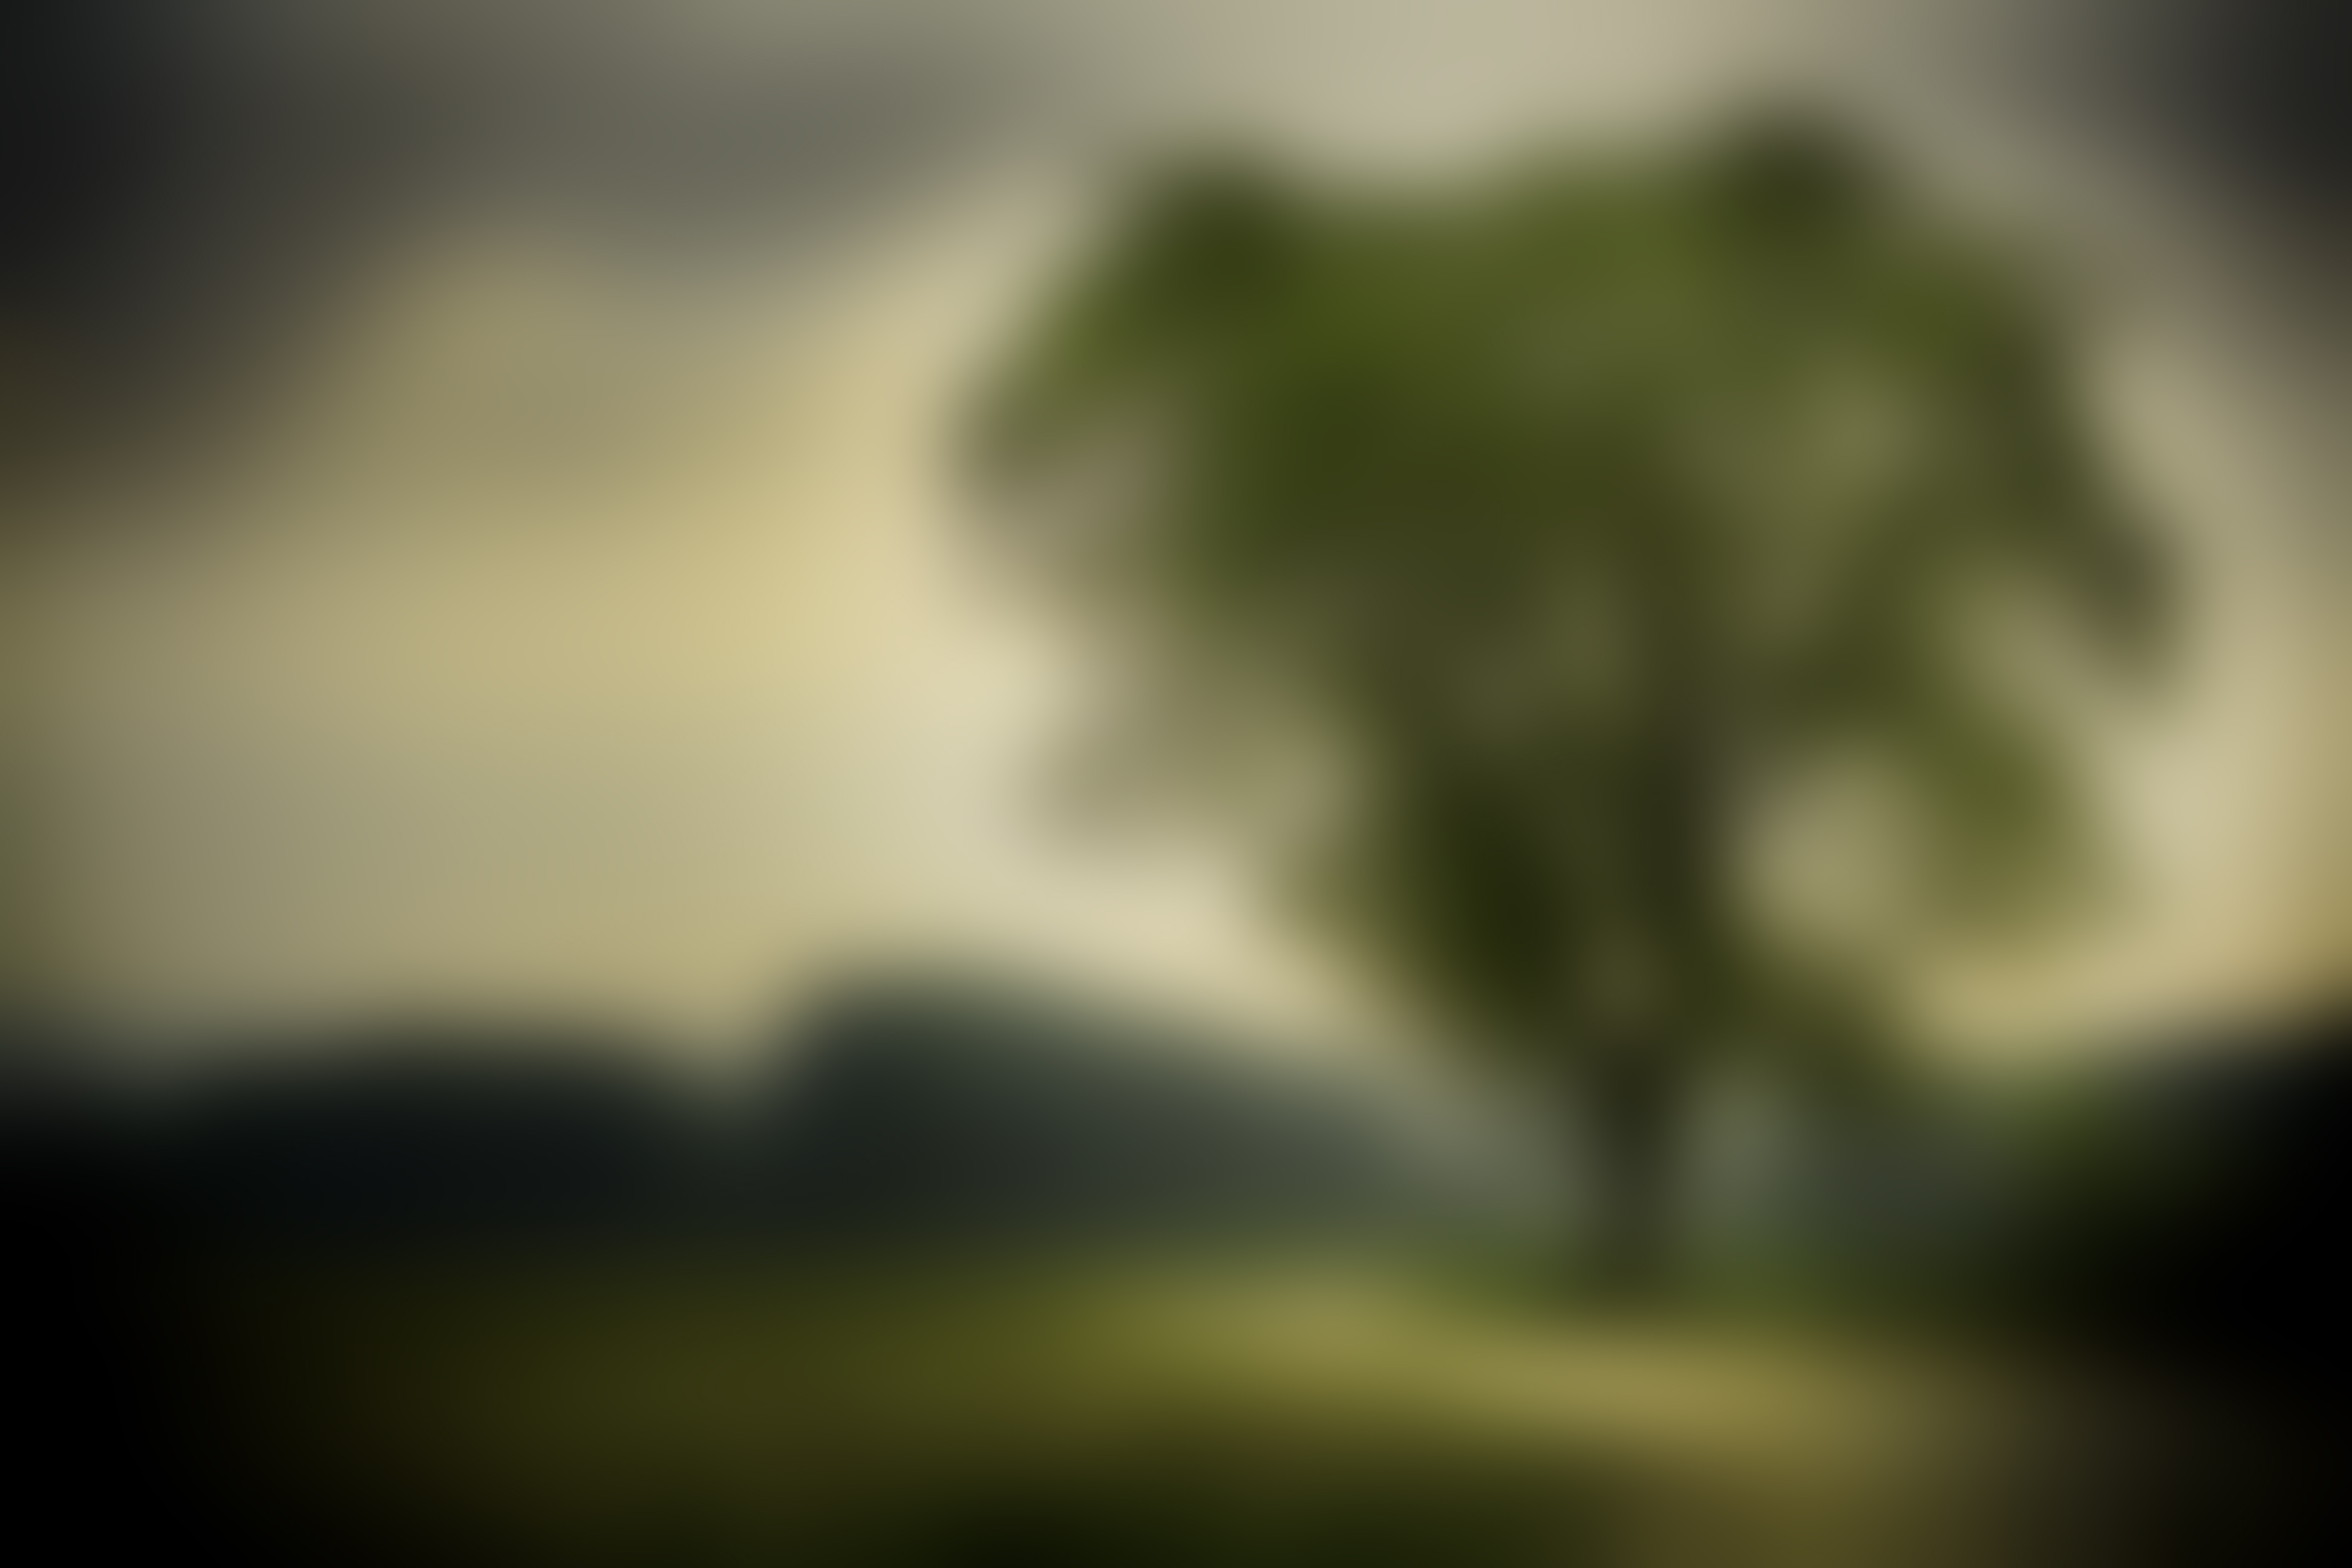 Nature tree blurry background #1060